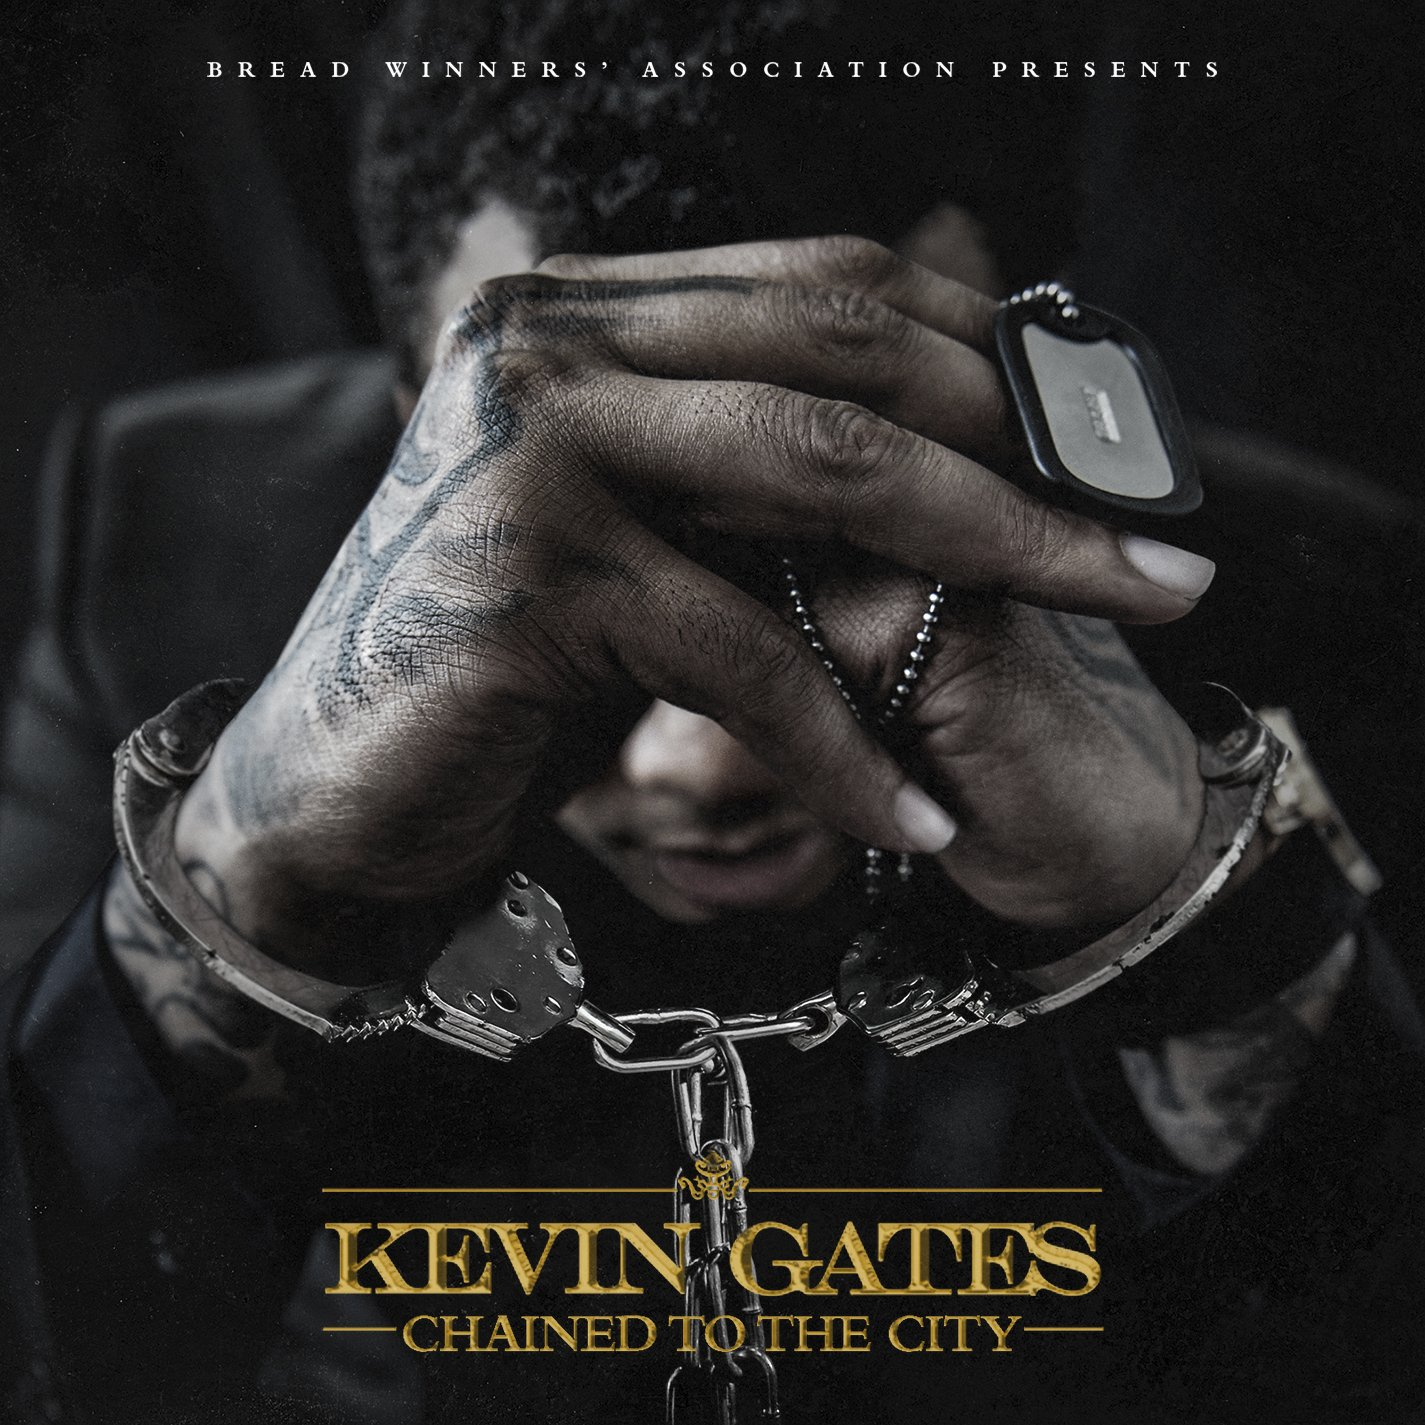 Check out Kevin Gates' (@iamkevingates) surprise three-song EP 'Chained To The City' https://t.co/foY6UdMnyJ https://t.co/6k3odPBLjv